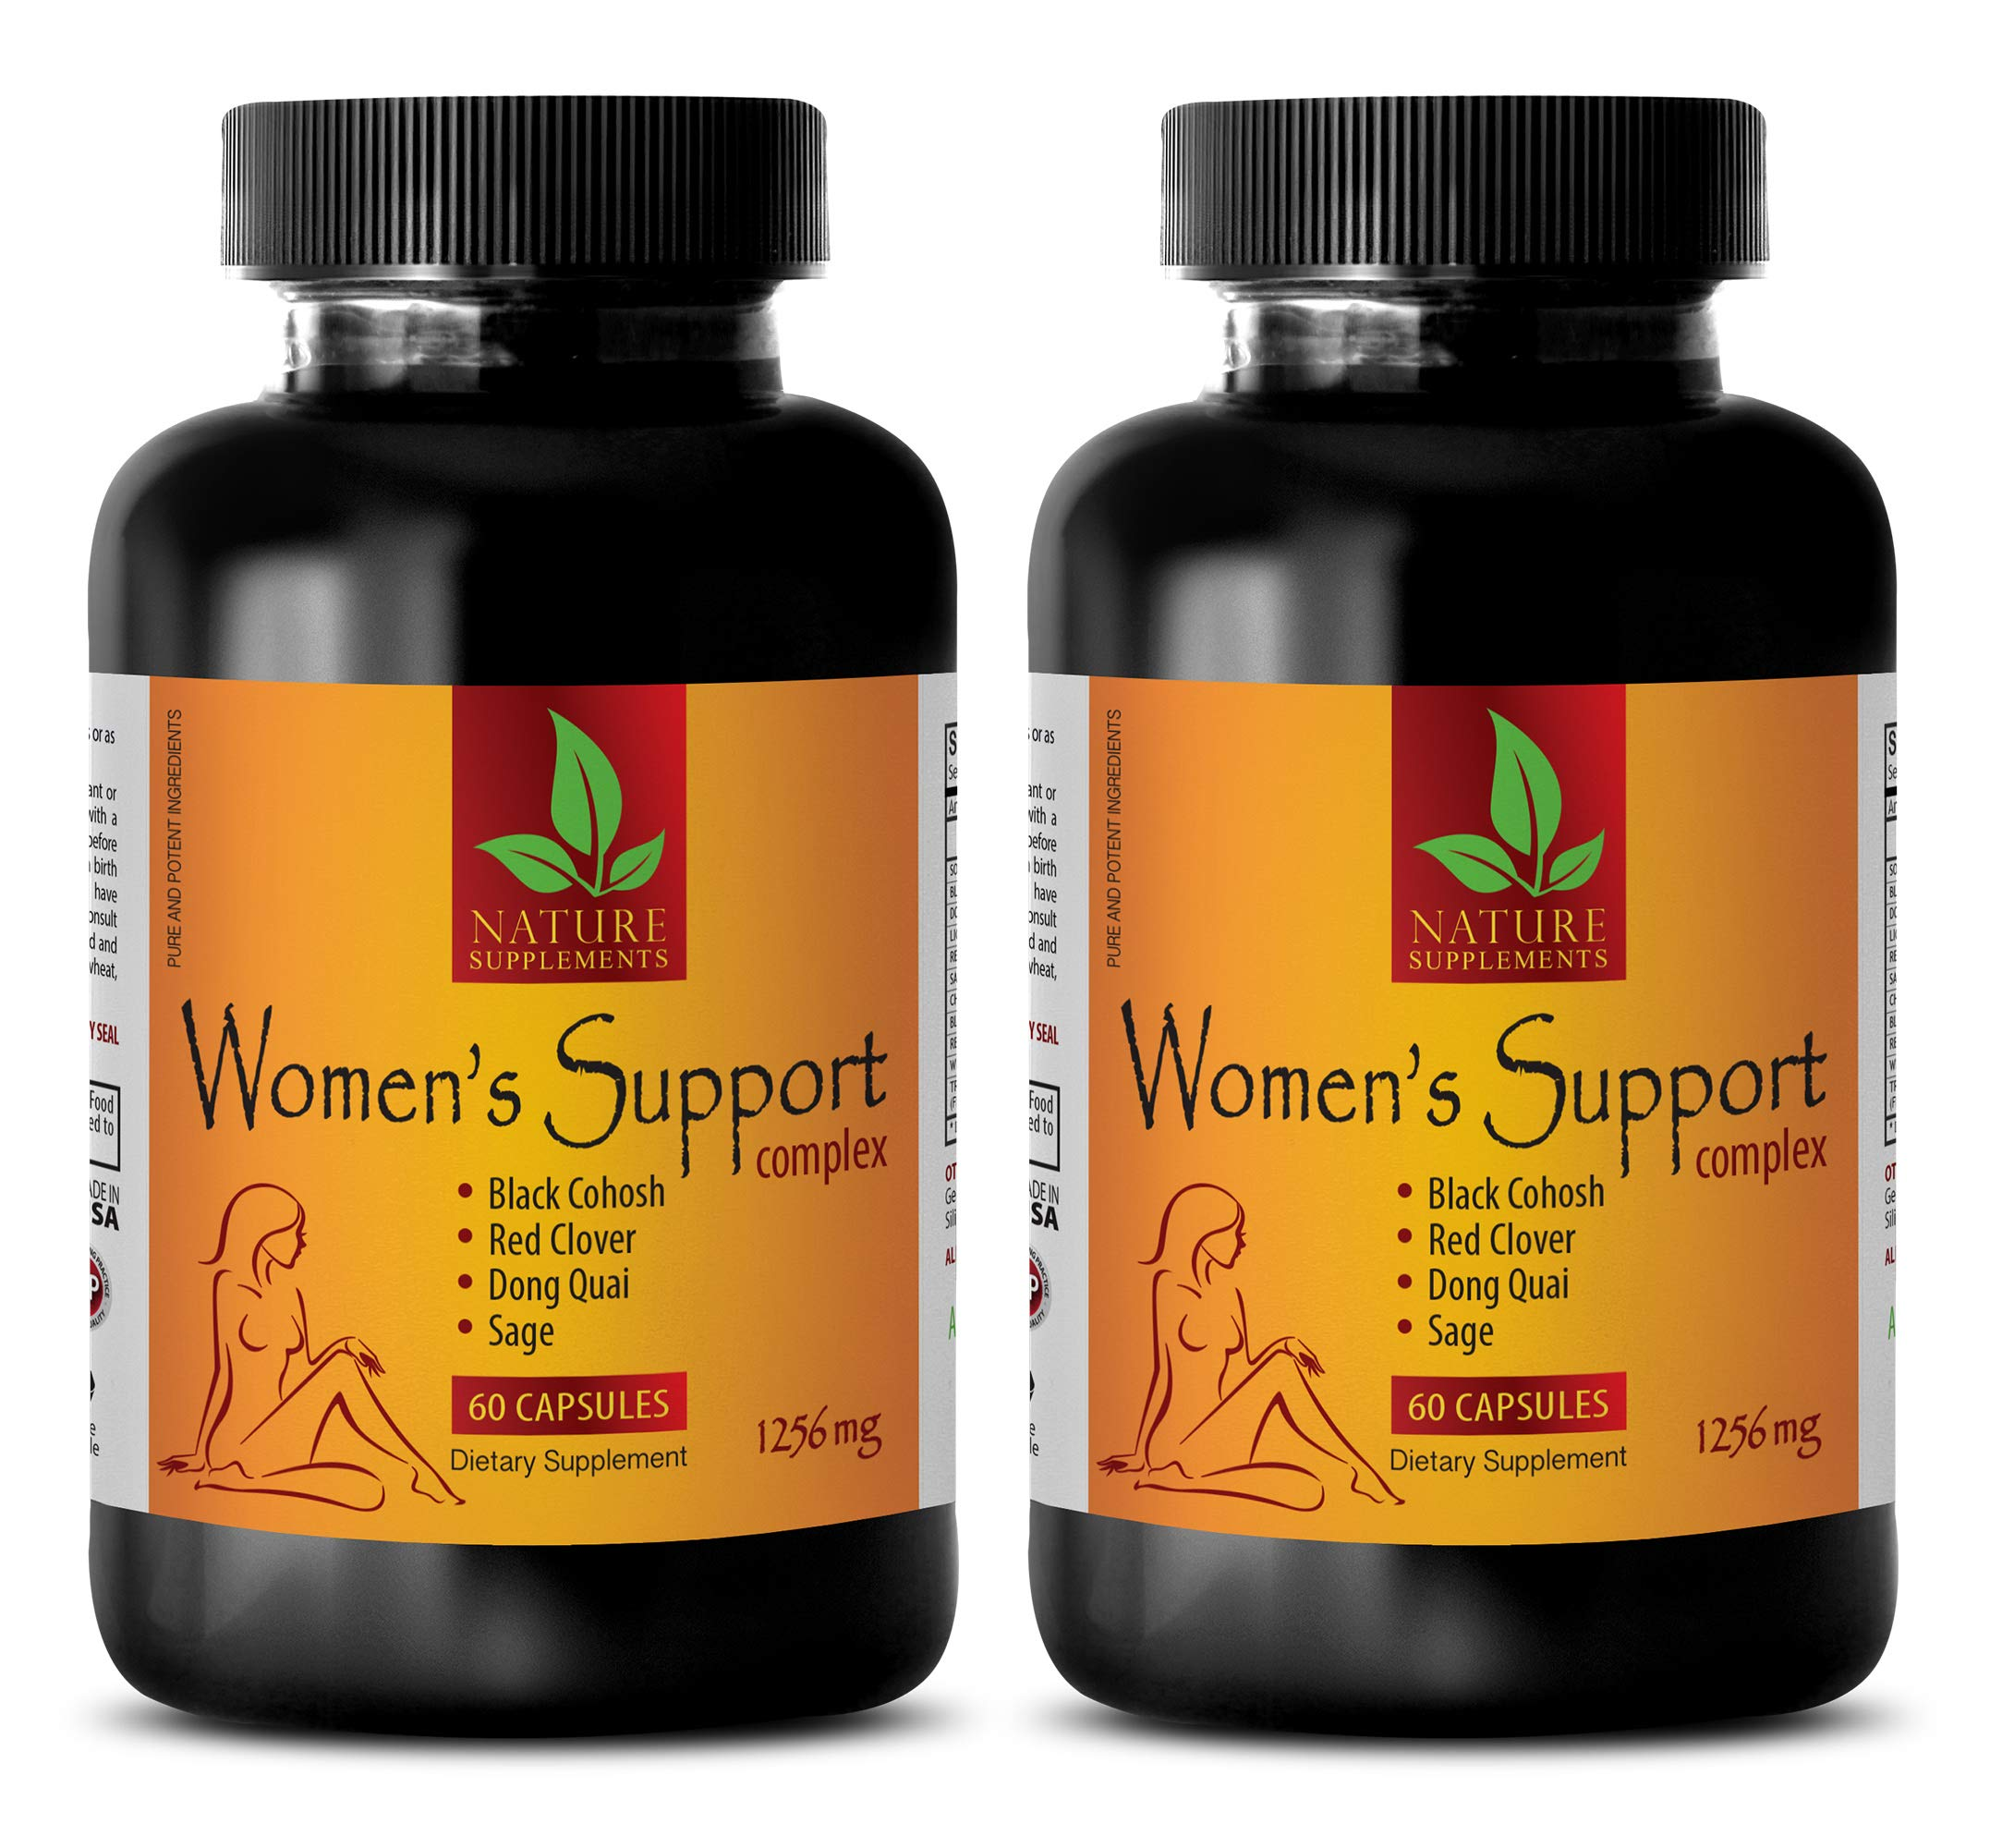 Sleep for Women - Women's Support Complex 1256 mg - Wellness core - 2 Bottles (120 Capsules)